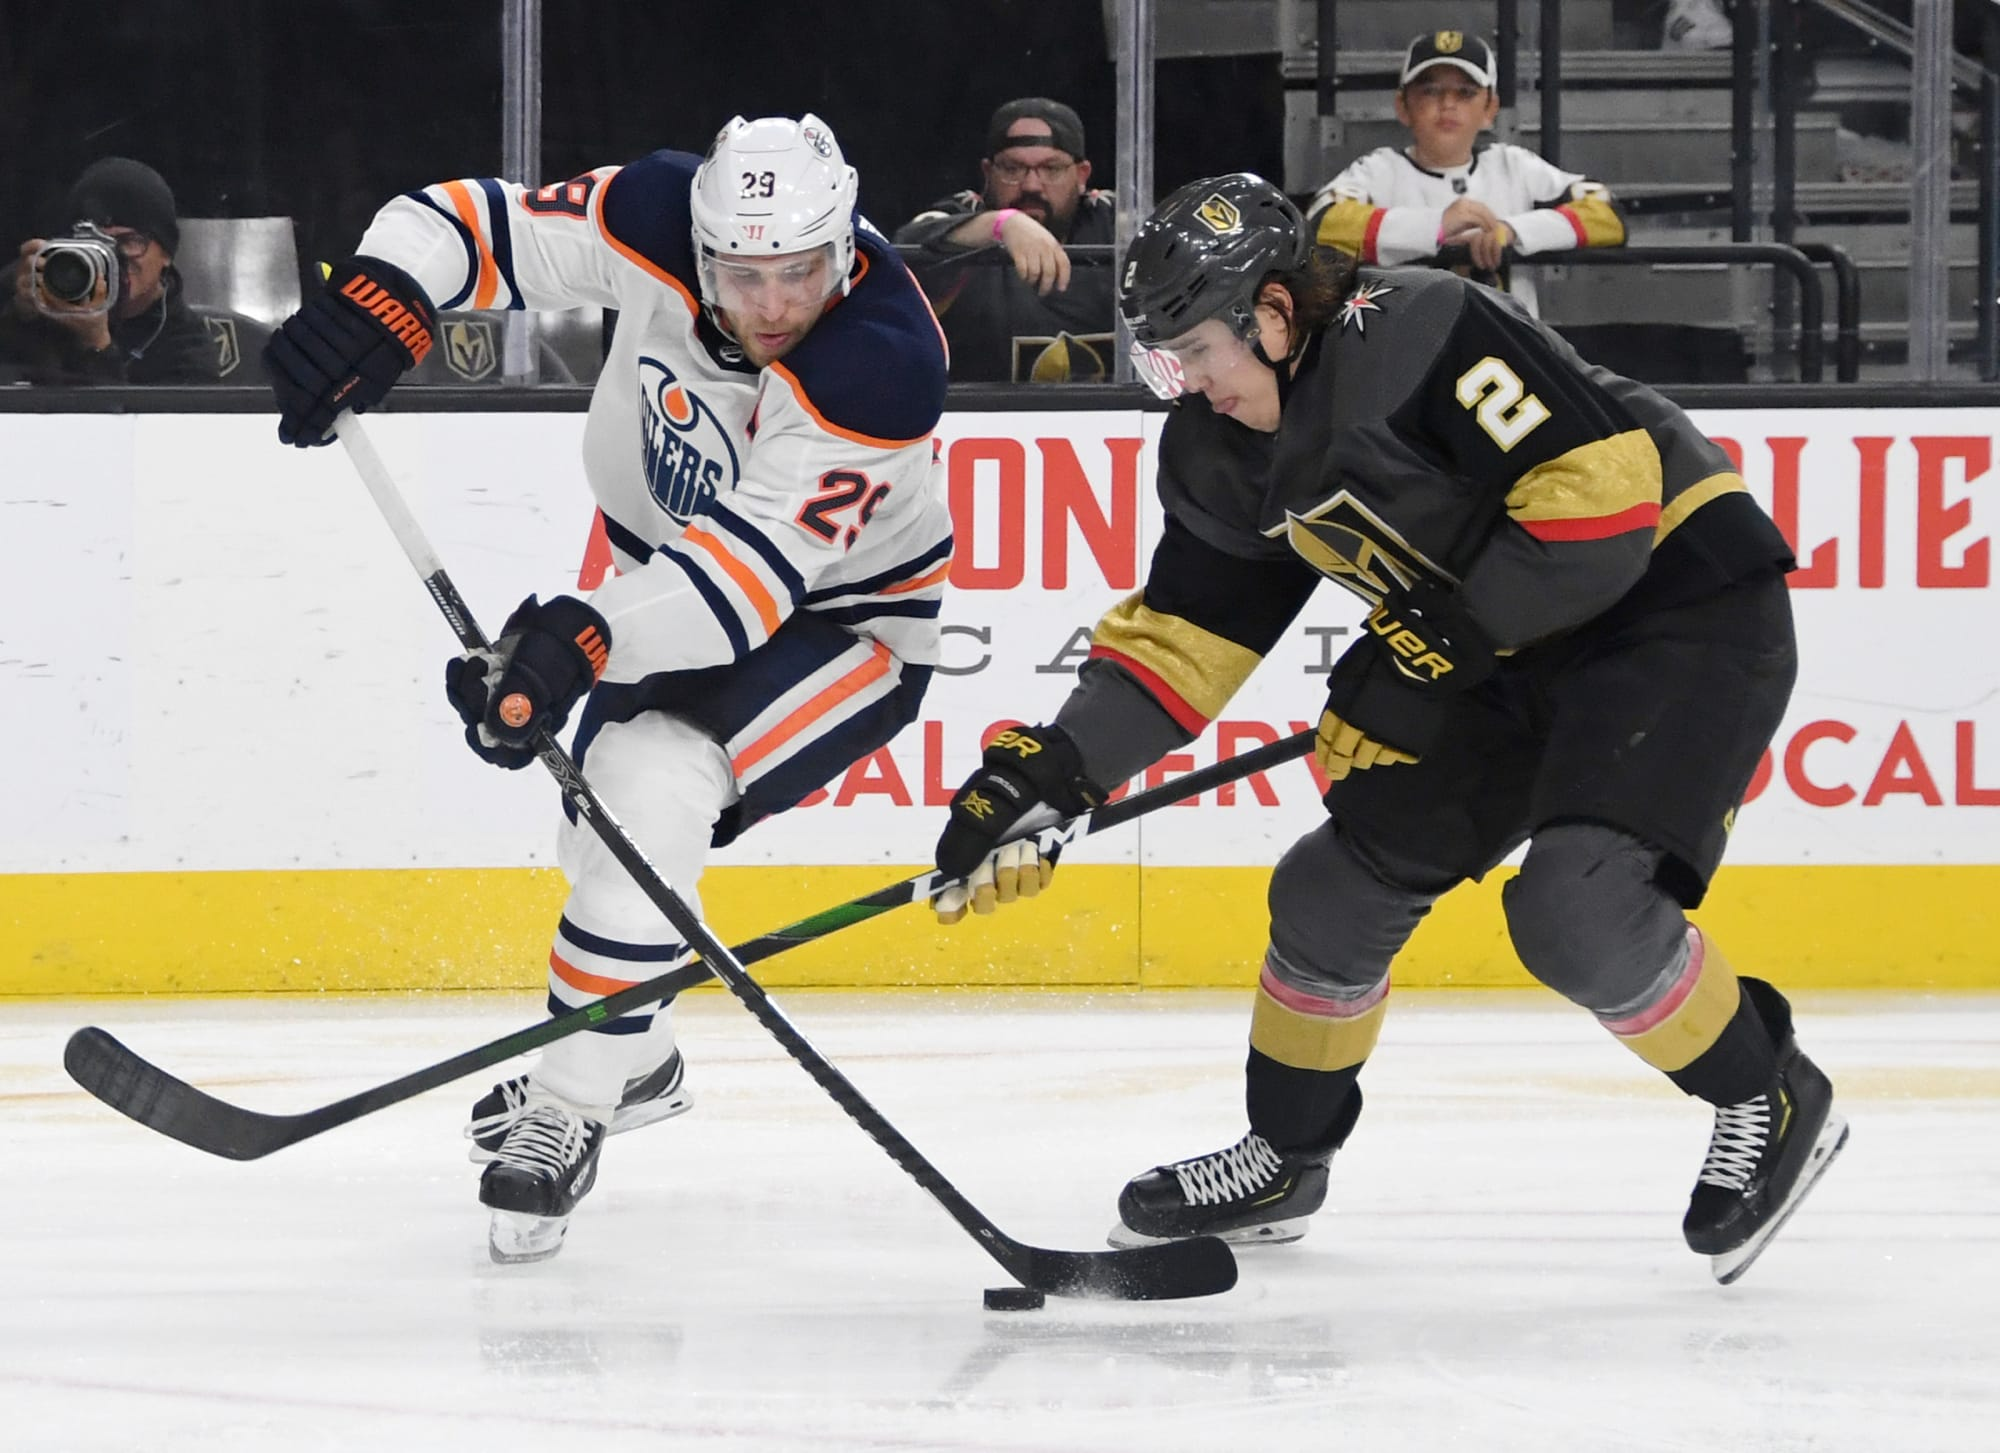 Oilers vs Knights: Date, Time, How to Watch and More